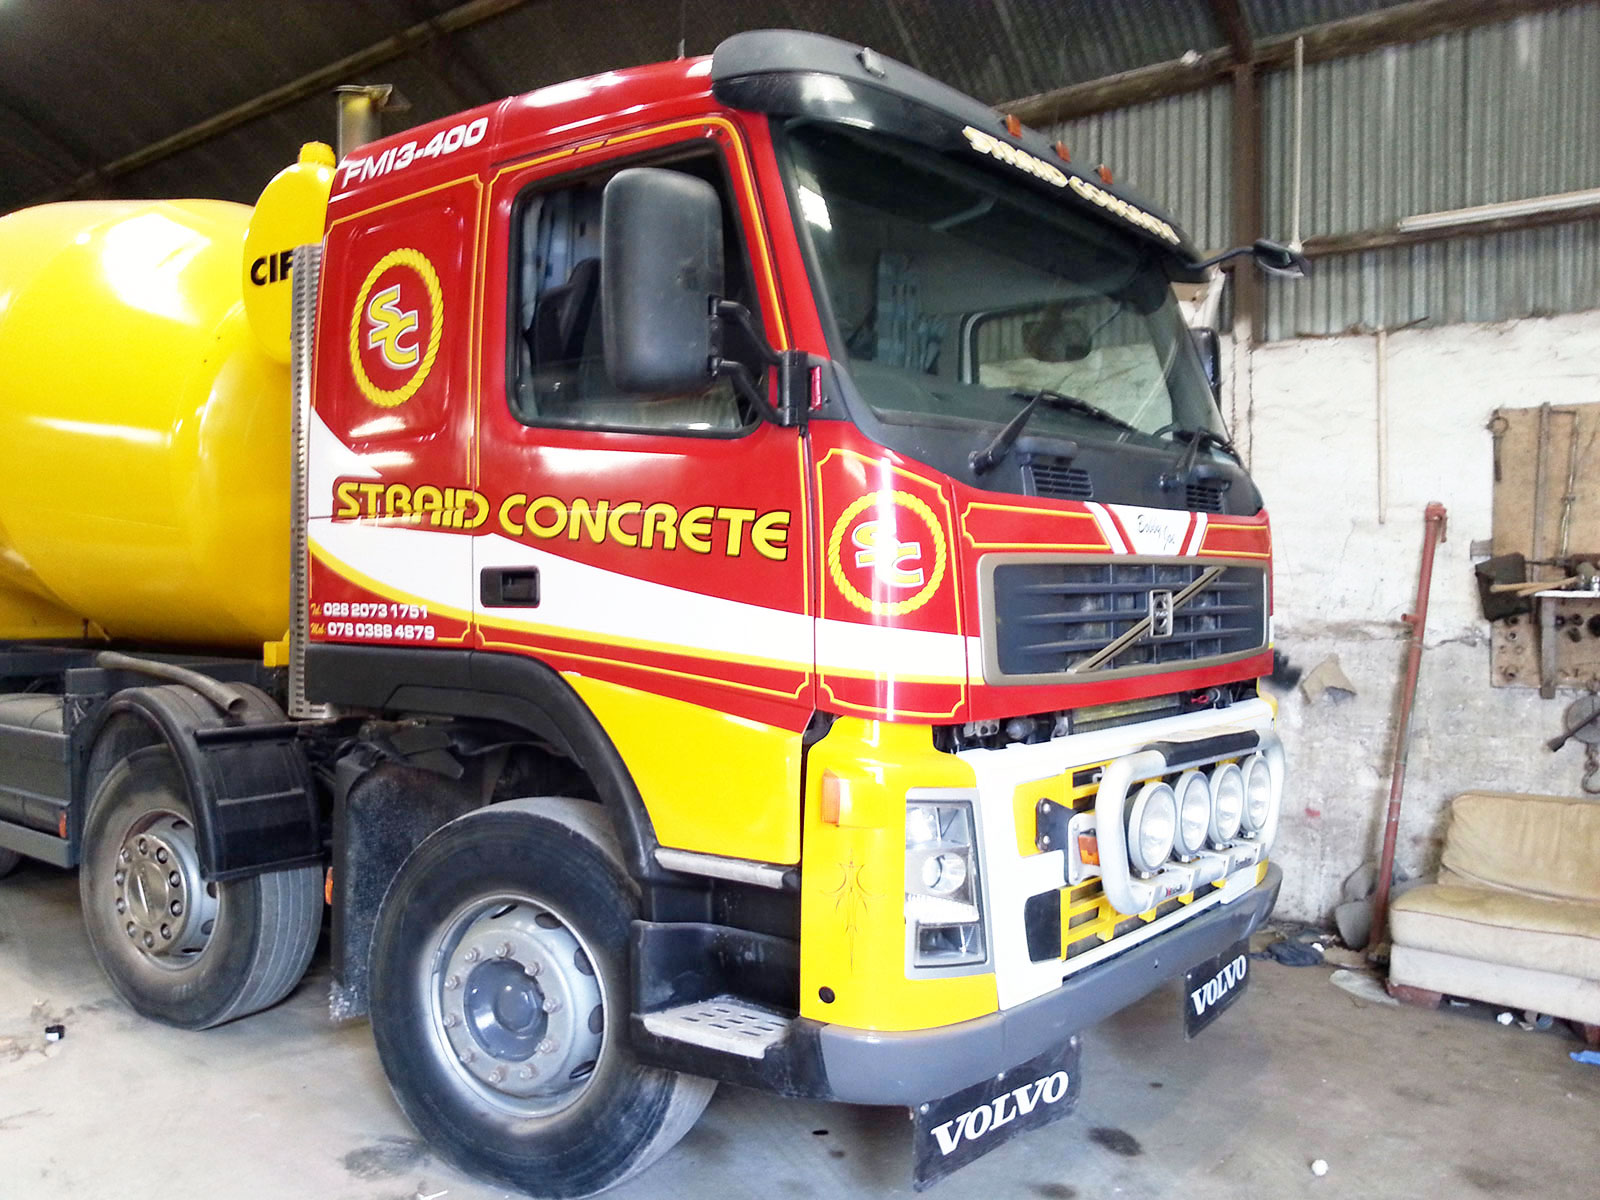 Lorry-Graphics-Straid-Concrete1